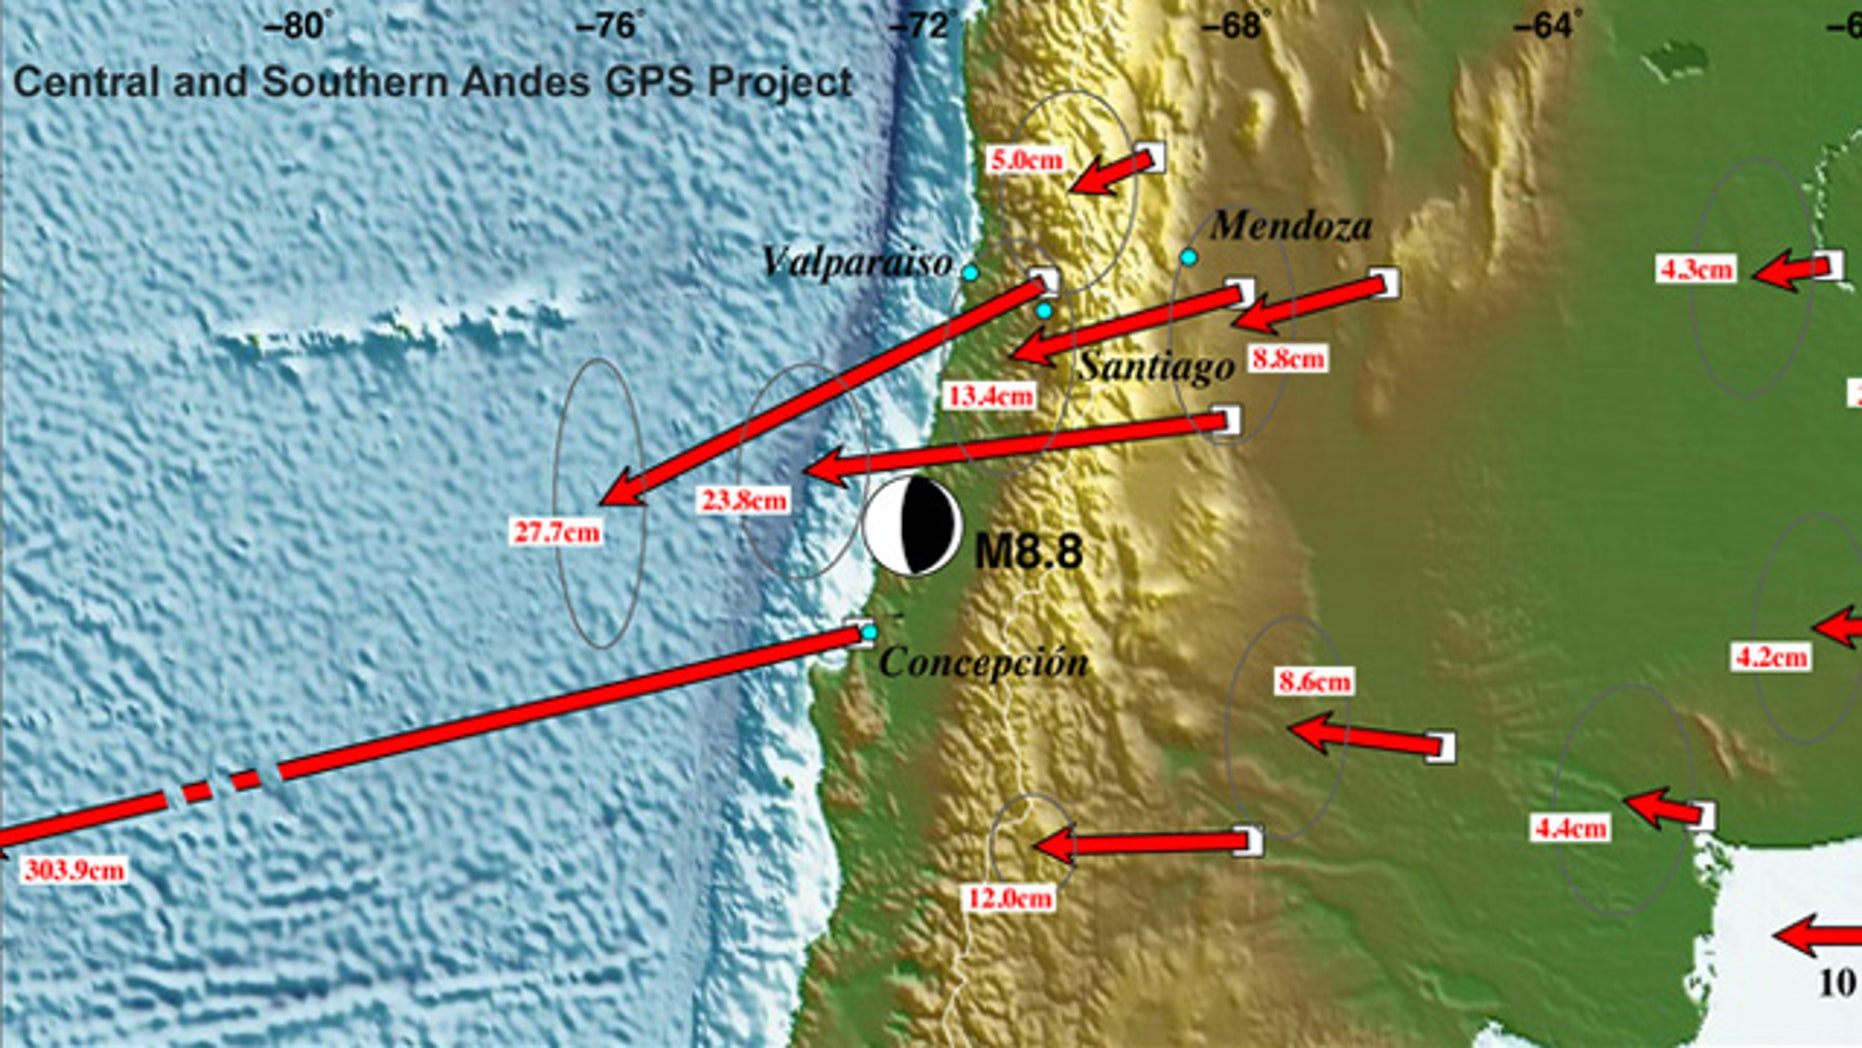 A preliminary map reveals Significant displacements as far east as Buenos Aires, Argentina and as far north as the Chilean border with Peru, thanks to the massive earthquake.